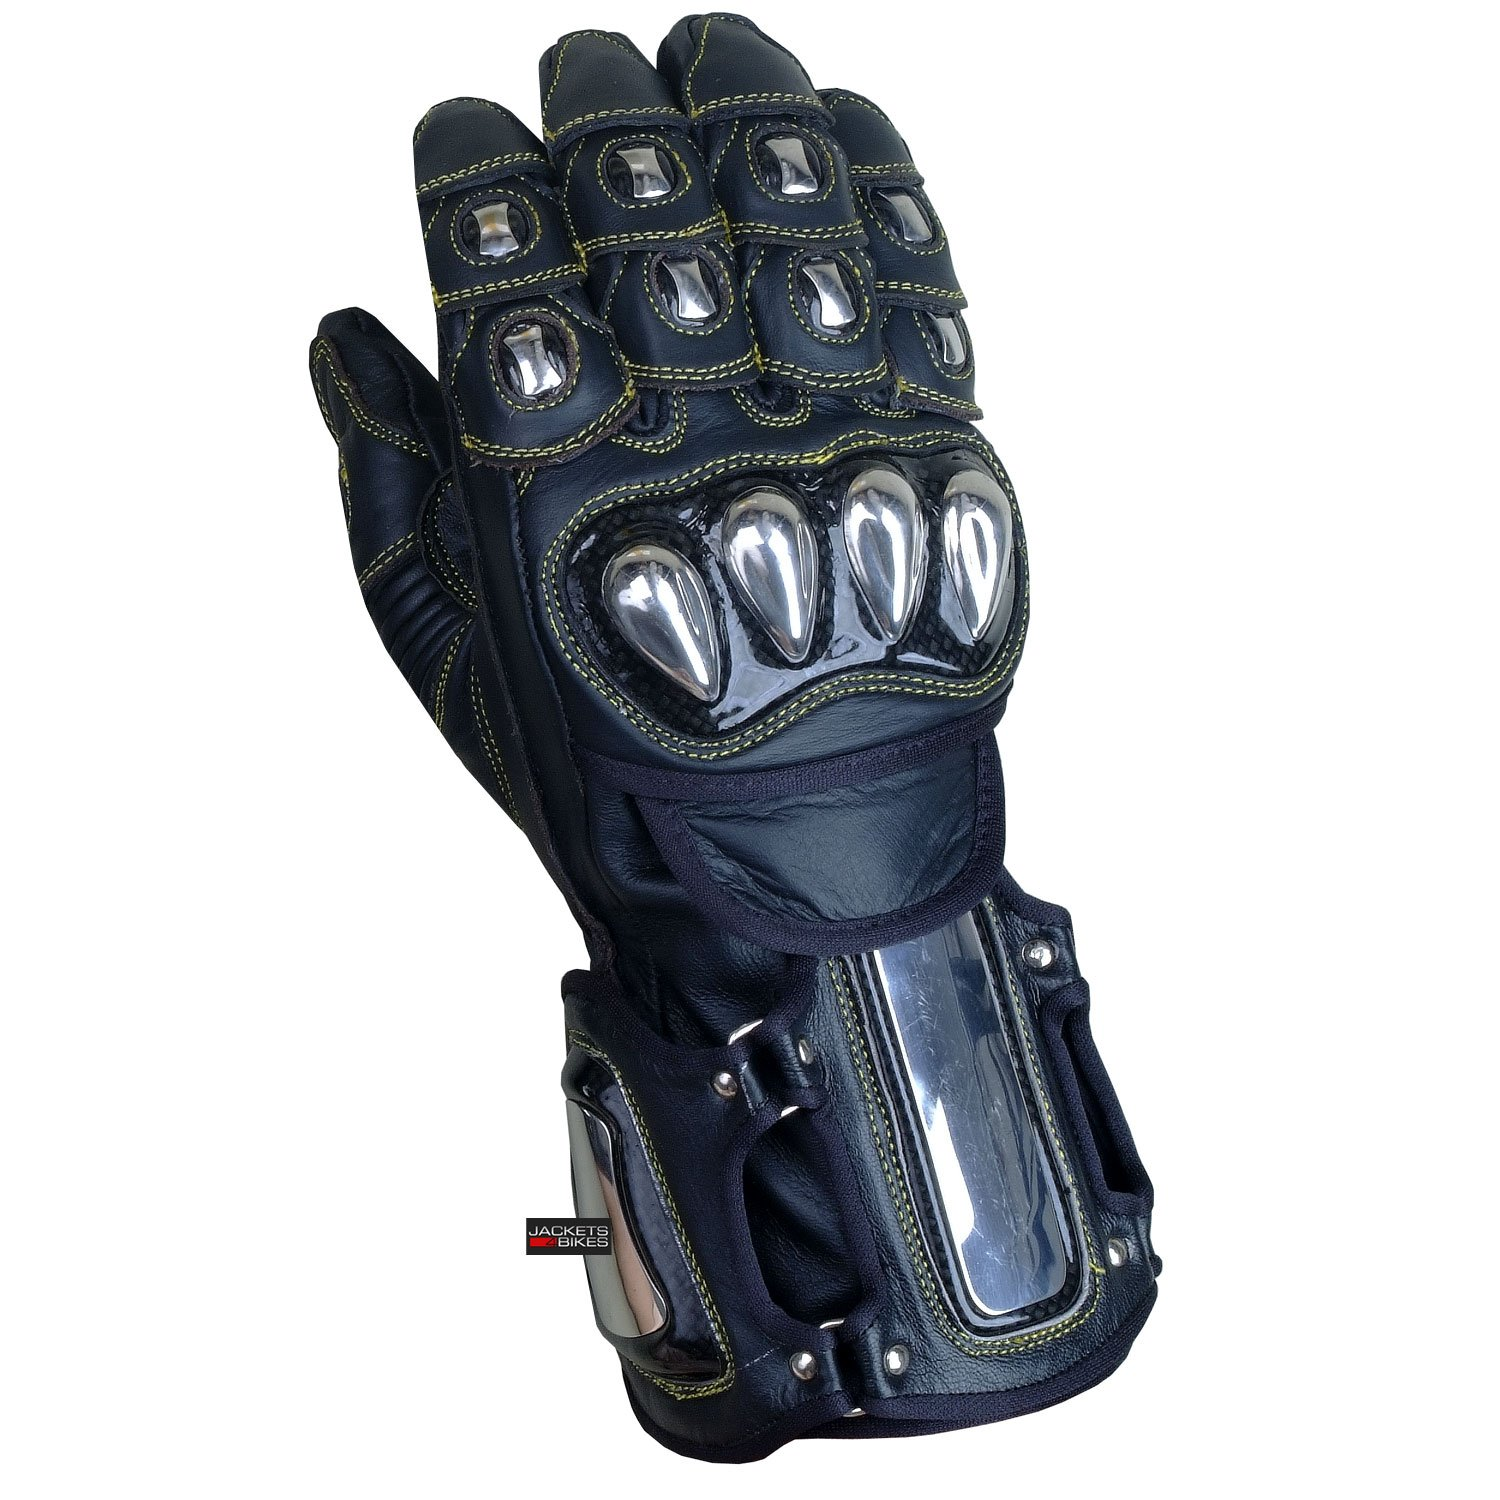 Motorcycle leather gloves amazon - Excalibur Black Leather Carbon Steel Armor Motorcycle Gloves